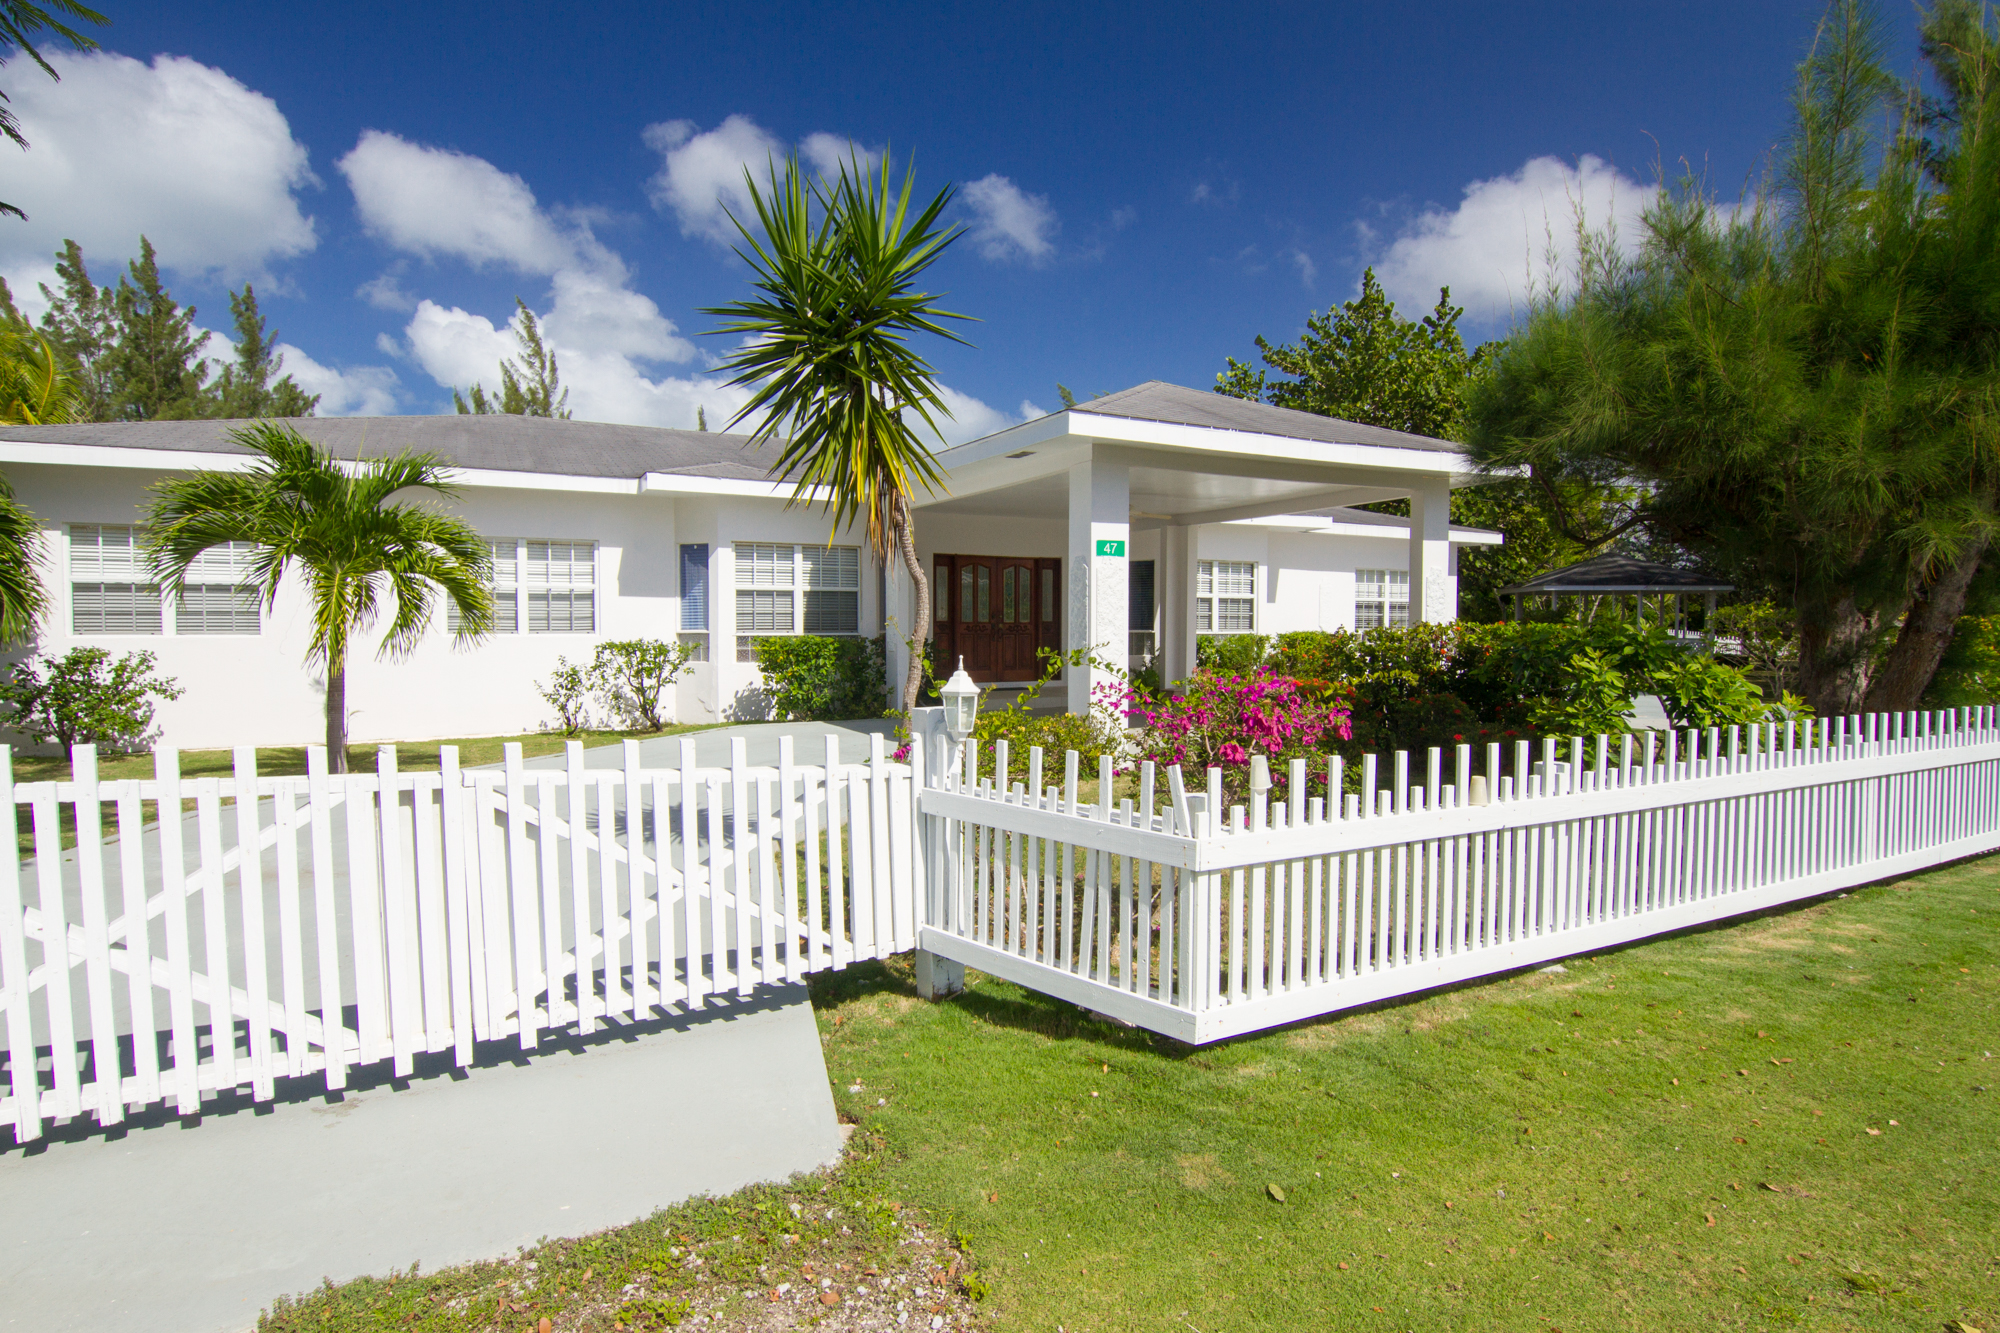 Single Family Home for Sale at Spacious Family home on double lot Satinwood St #47 George Town, Grand Cayman, KY1 Cayman Islands